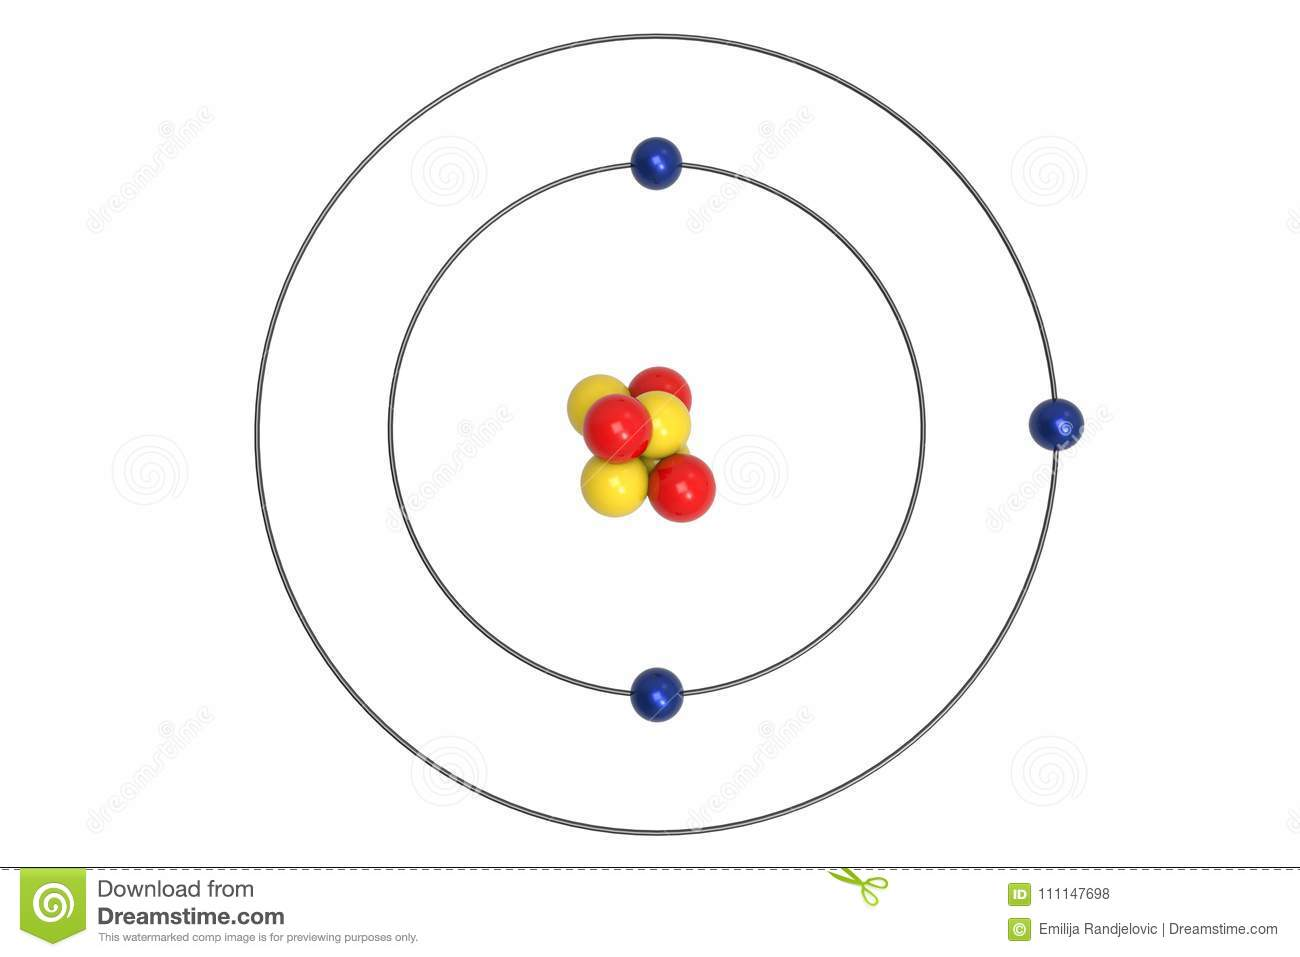 Lithium Atom Bohr Model With Proton Neutron And Electron